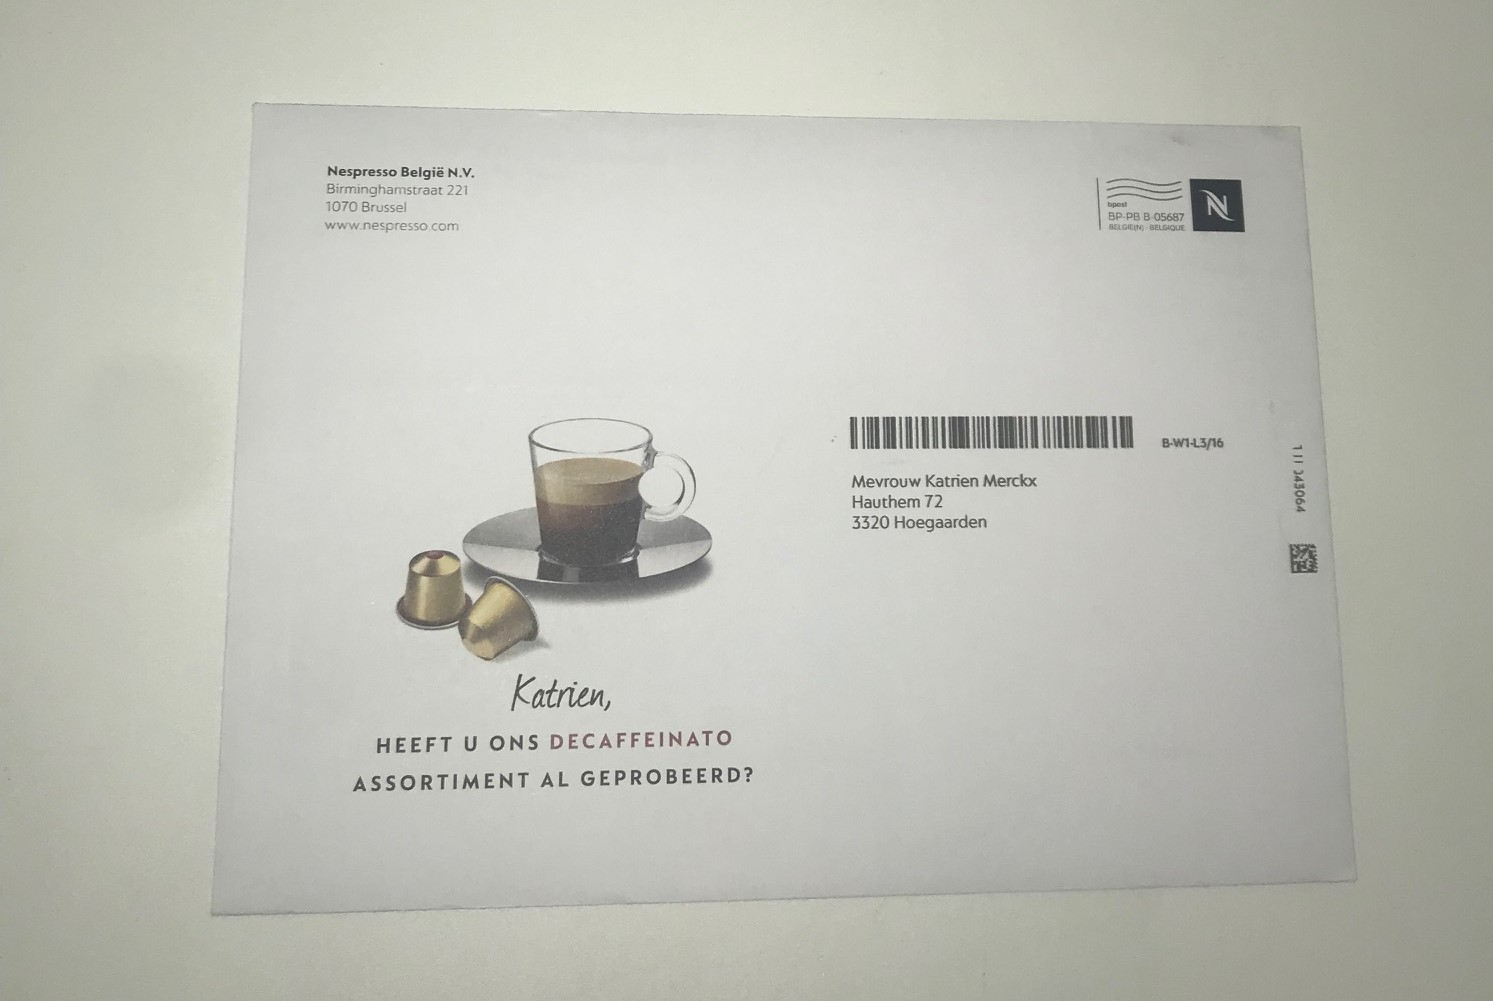 nespresso-direct-mail-1